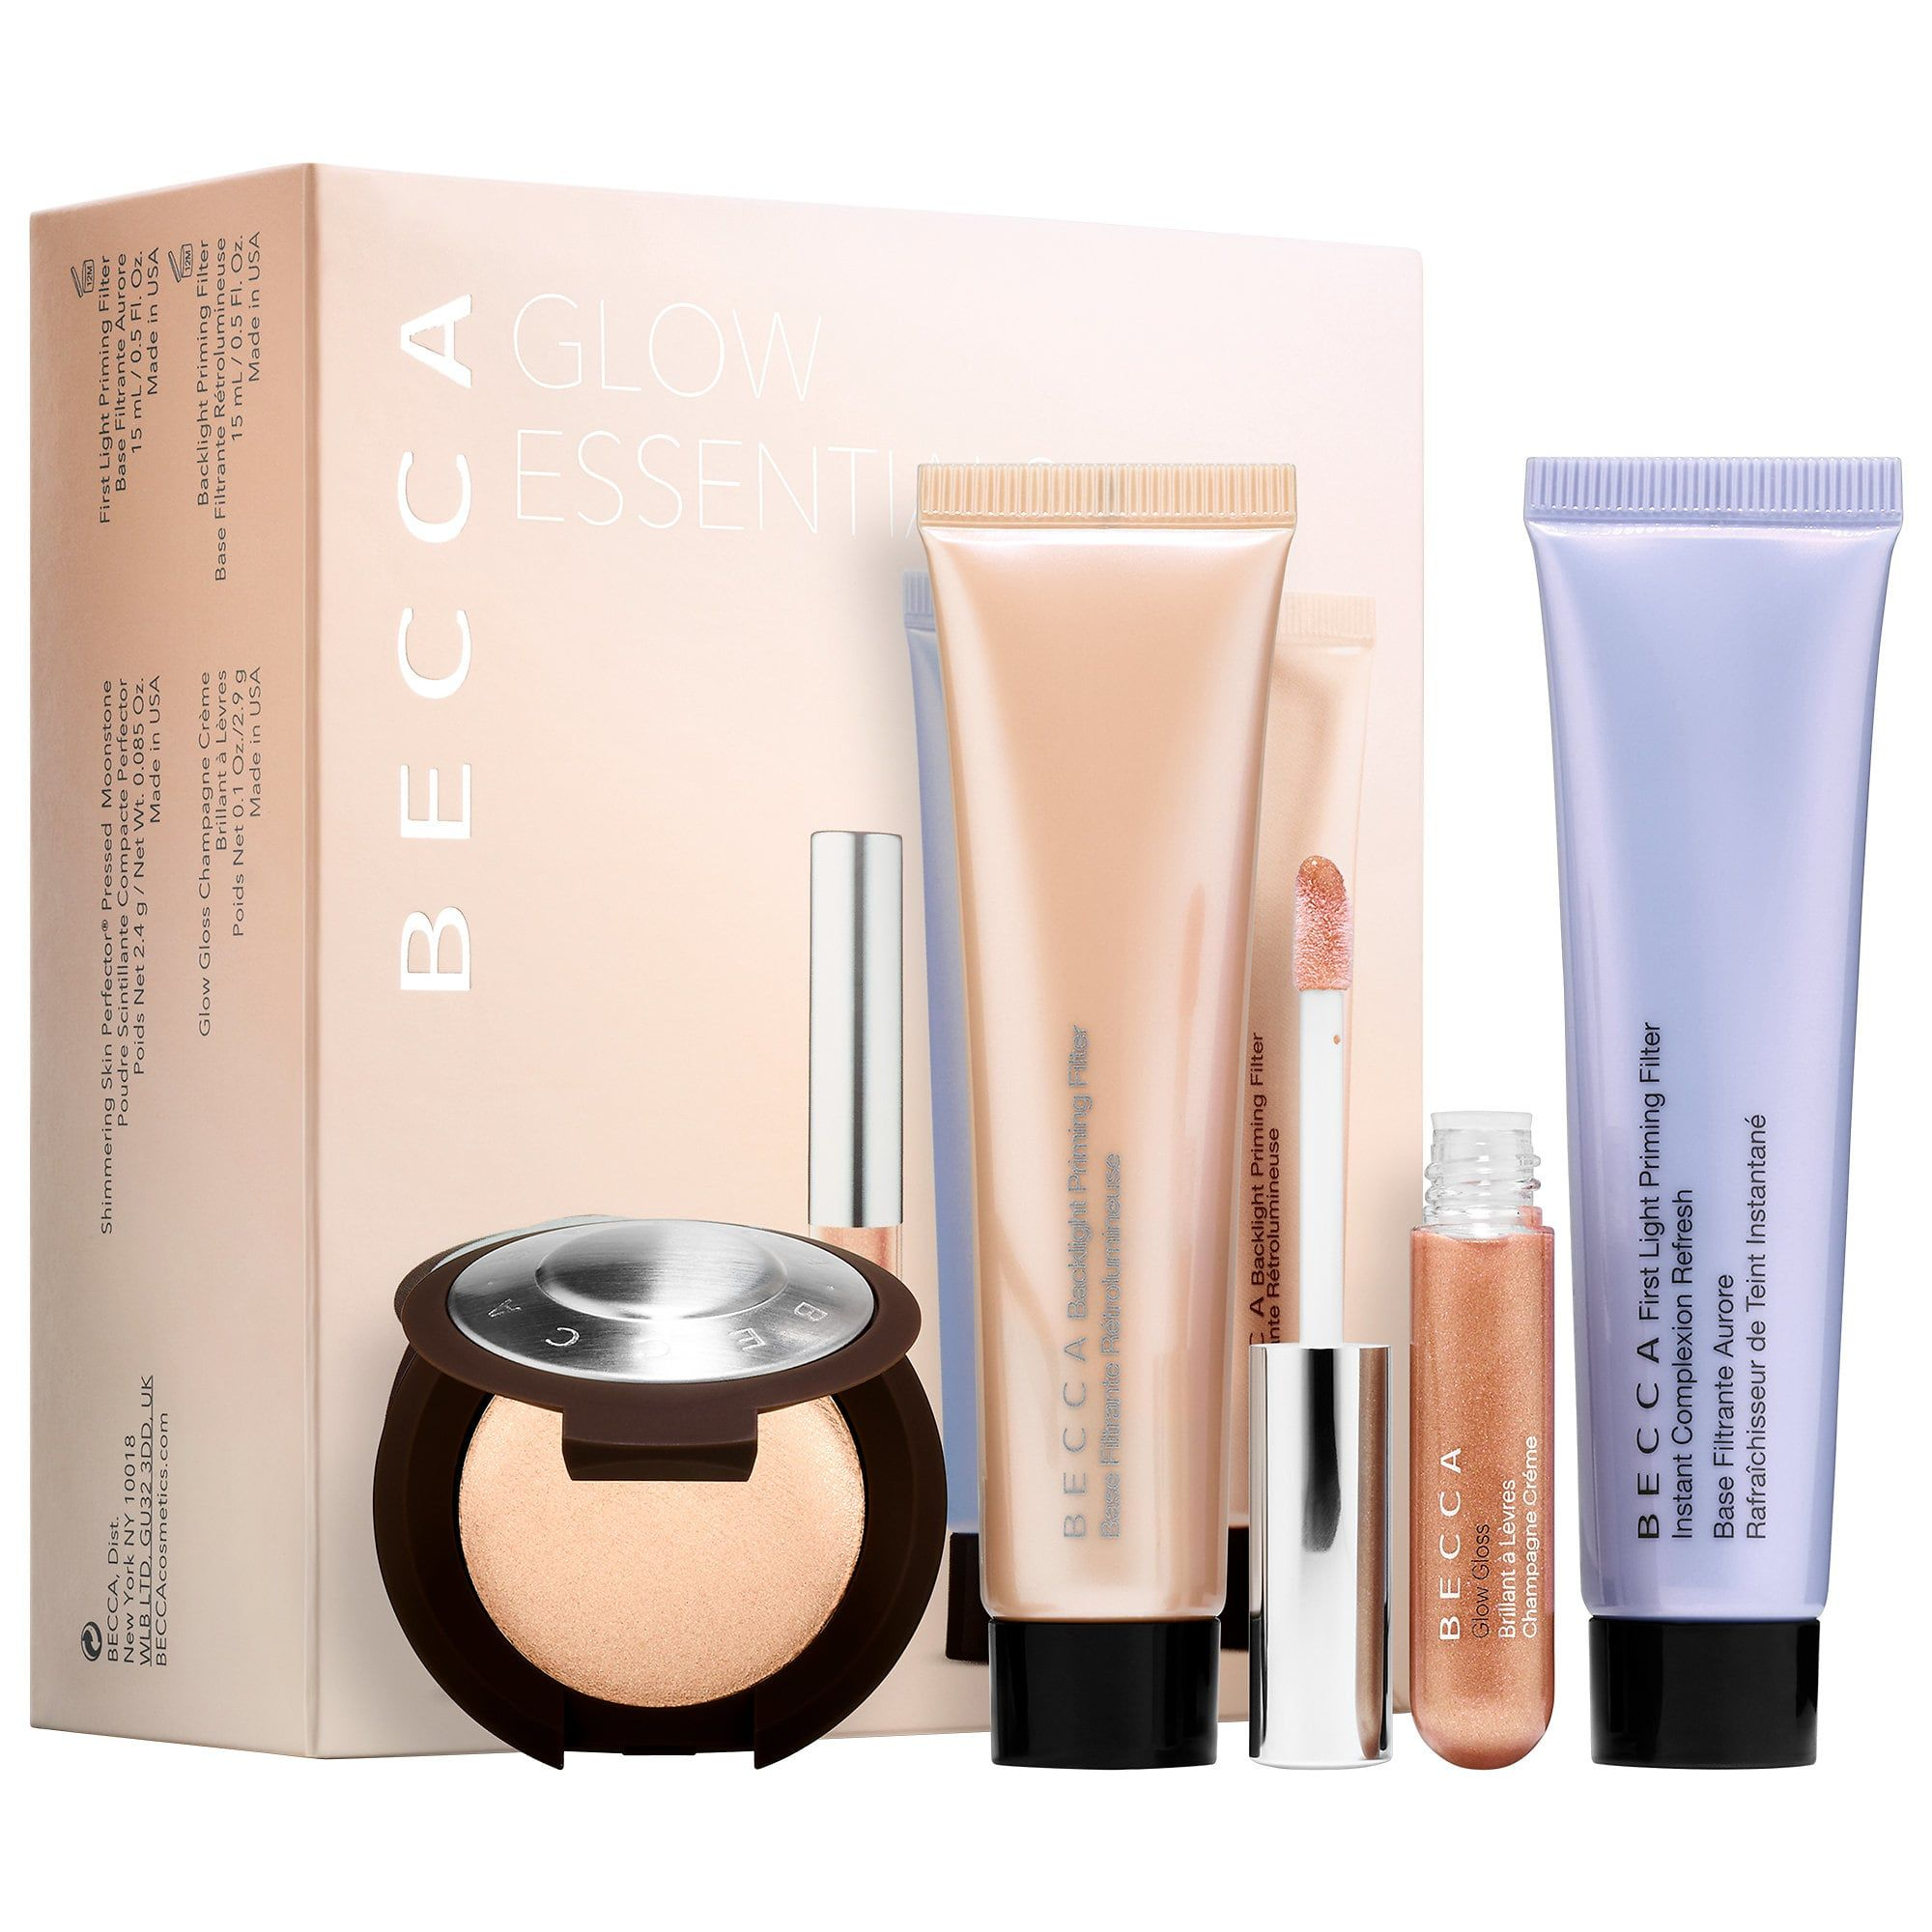 BECCA Glow Essentials Kit Sephora, Becca, The balm